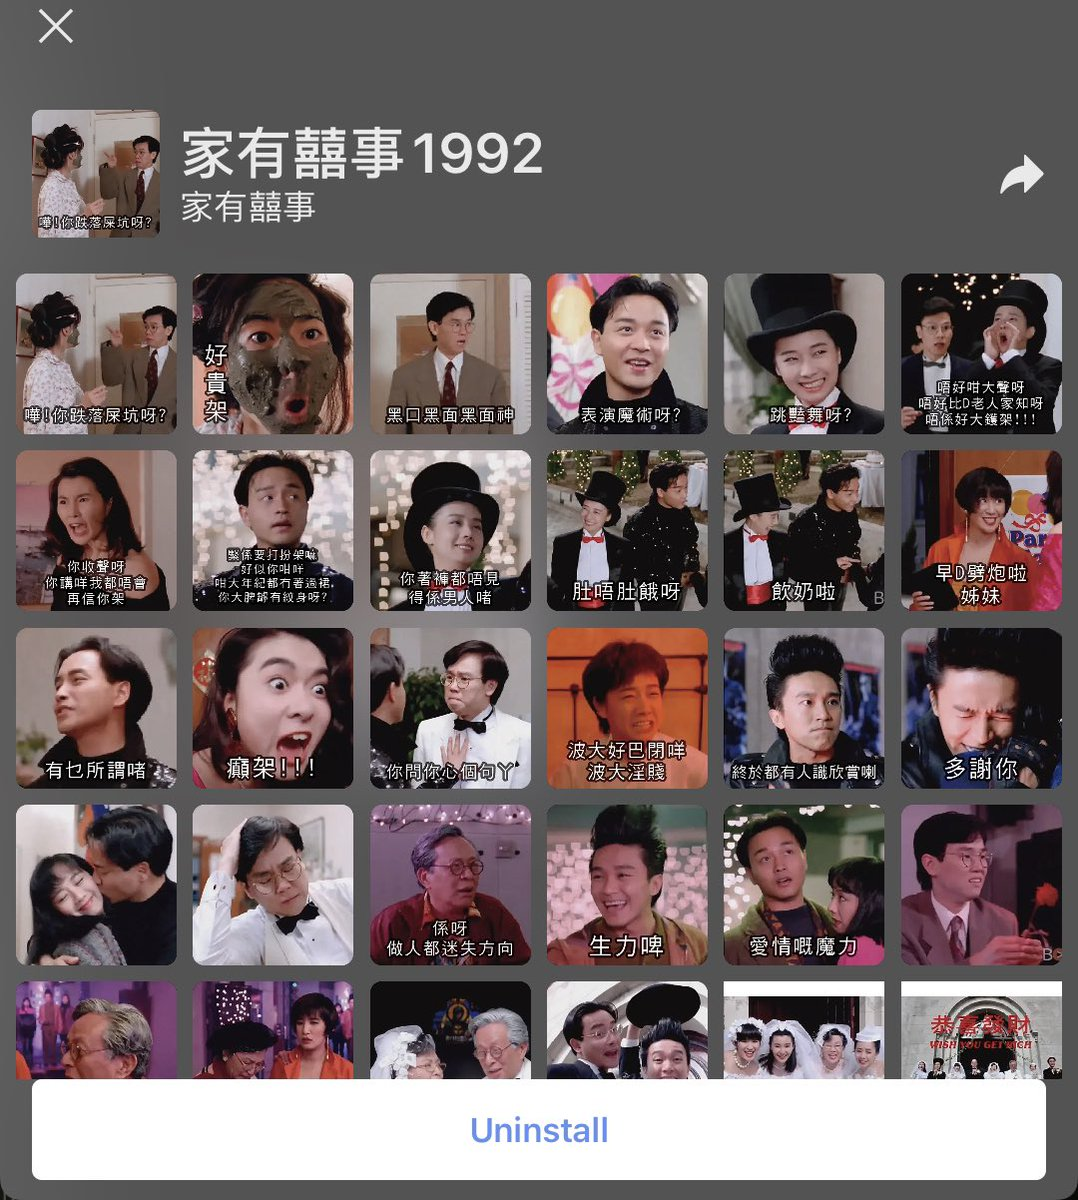 You know @signalapp is popular in Hong Kong when you start receiving stickers made out of classic scenes fr one of our favourite HK comedies 家有囍事 (All's Well, Ends Well)